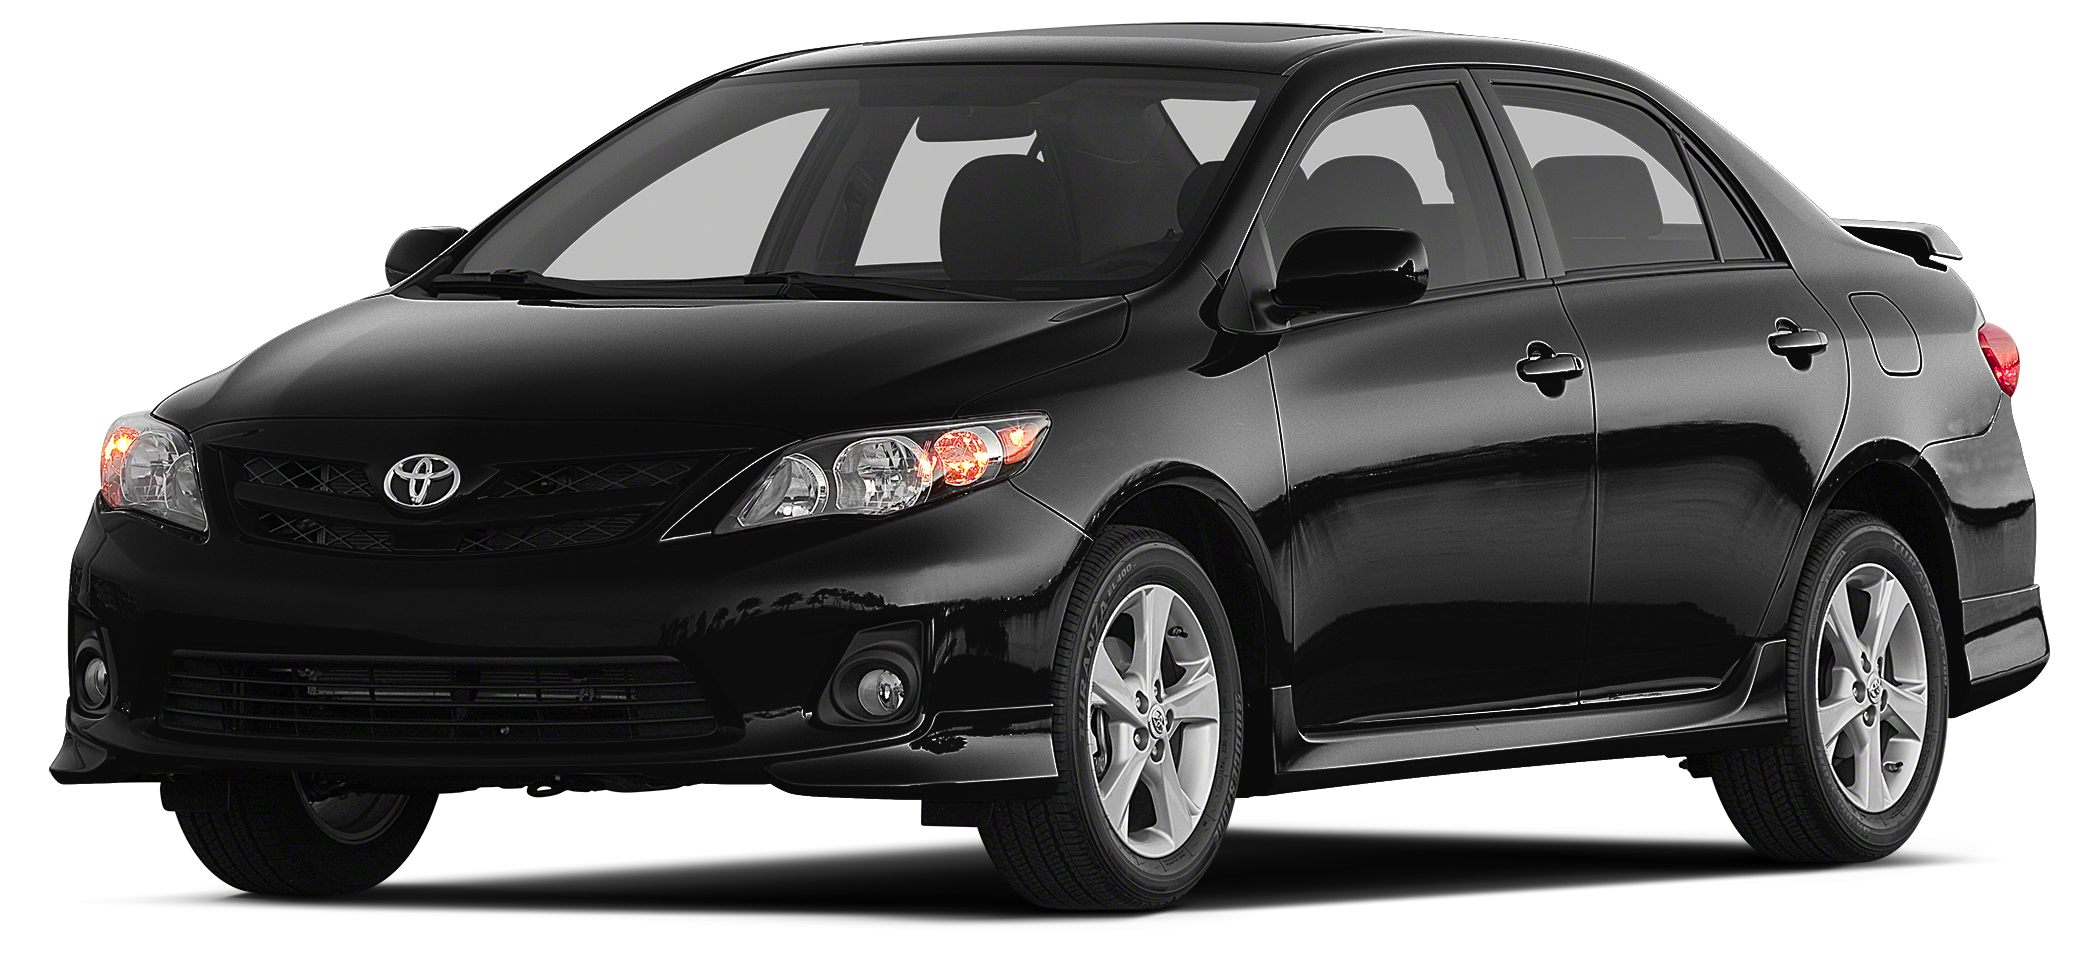 2011 Toyota Corolla S Win a steal on this 2011 Toyota Corolla S before its too late Comfortable